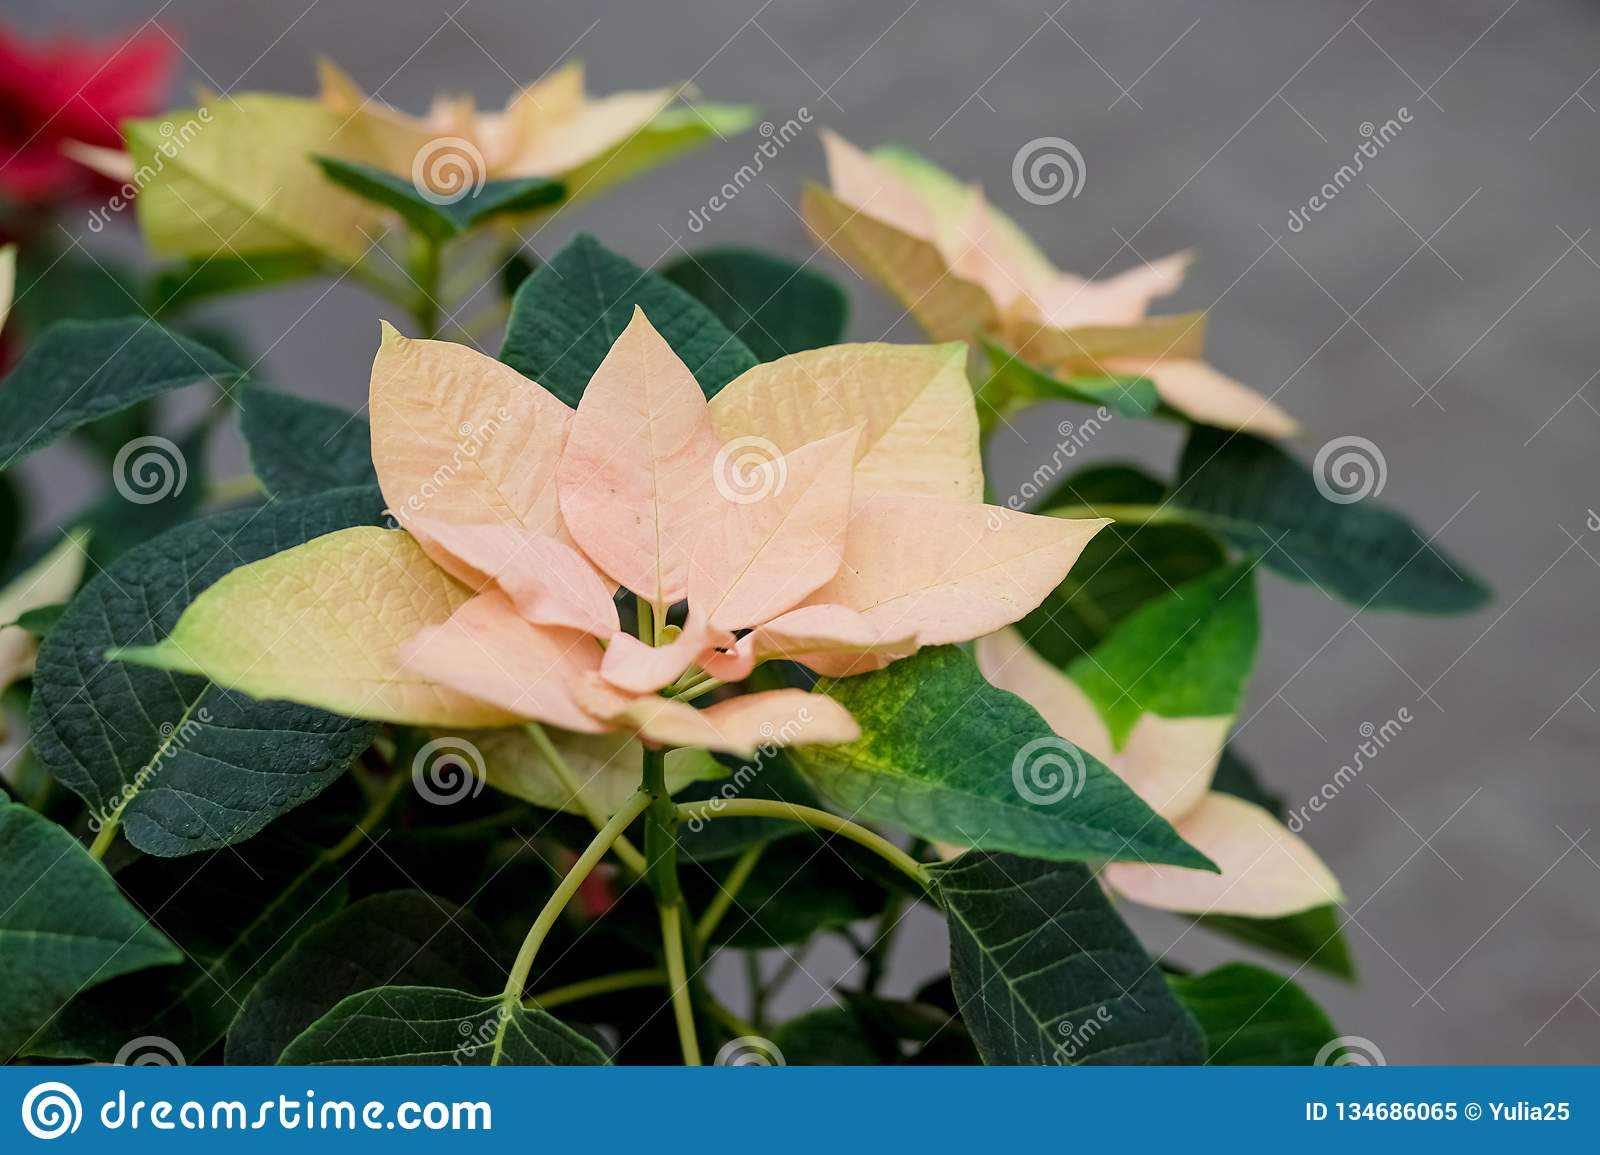 Field of yellow Christmas stars in greenhouse for sale. Background texture photo of Poinsettia flowers , Euphorbia